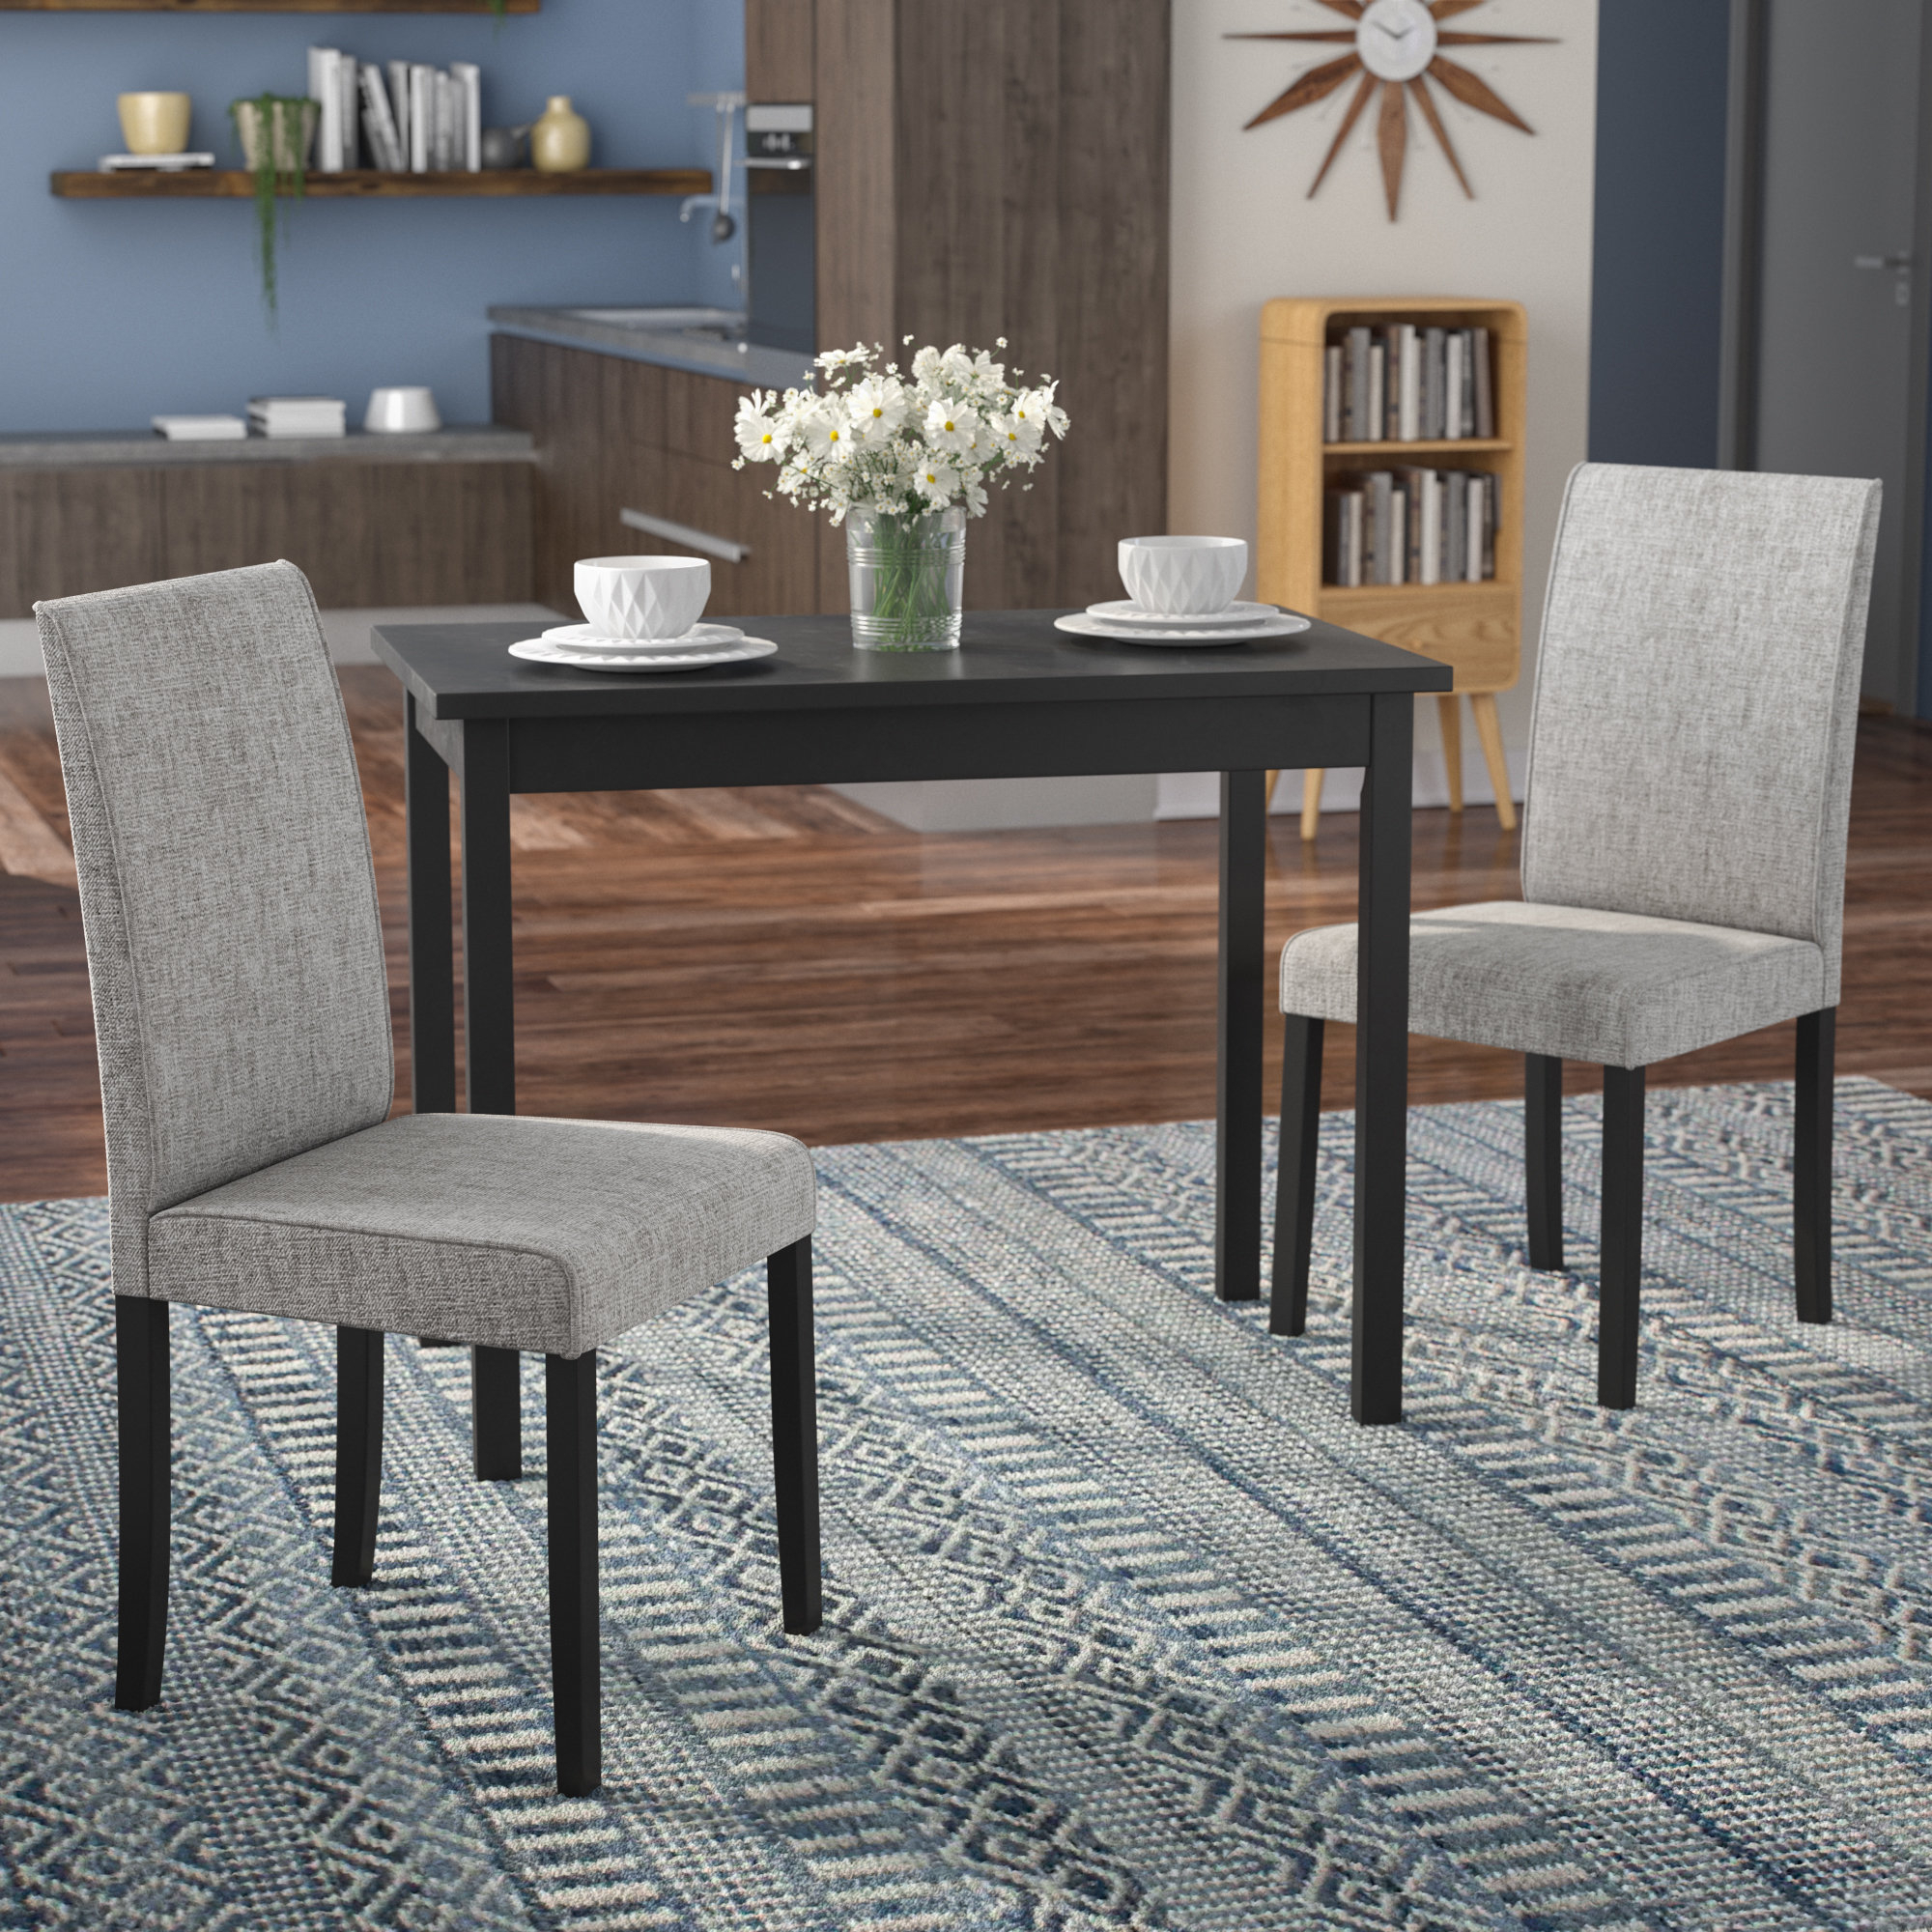 3 Piece Dining Sets Within Current Darvell 3 Piece Dining Set (Gallery 7 of 20)